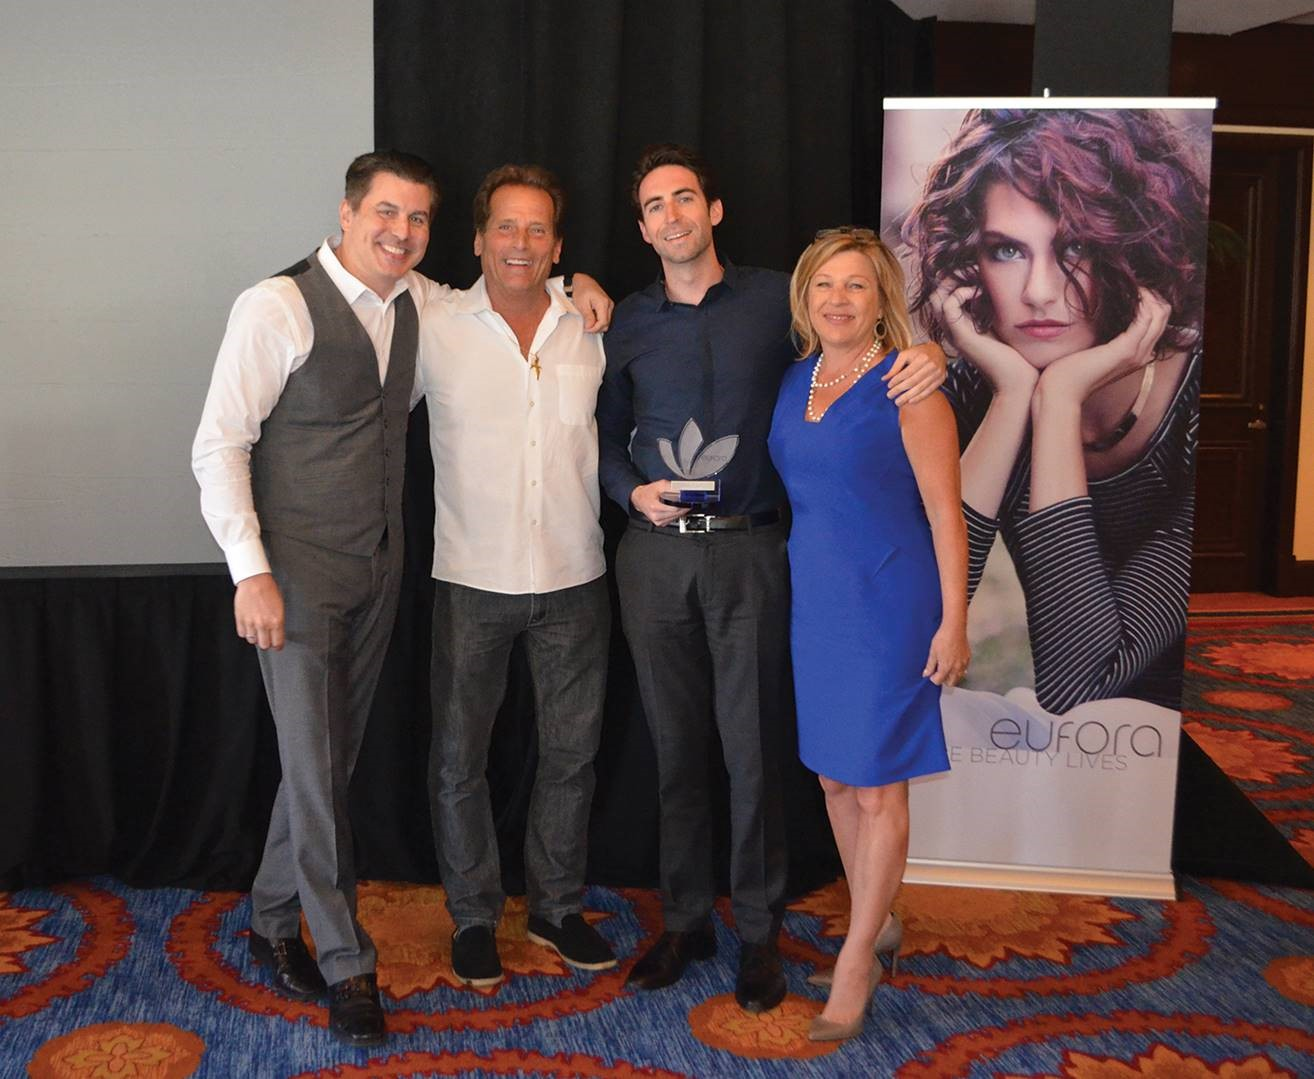 Fred Phillips of Eufora, Don Bewley of Eufora, Alex Cohn from Premier Beauty and Beth Bewley of Eufora